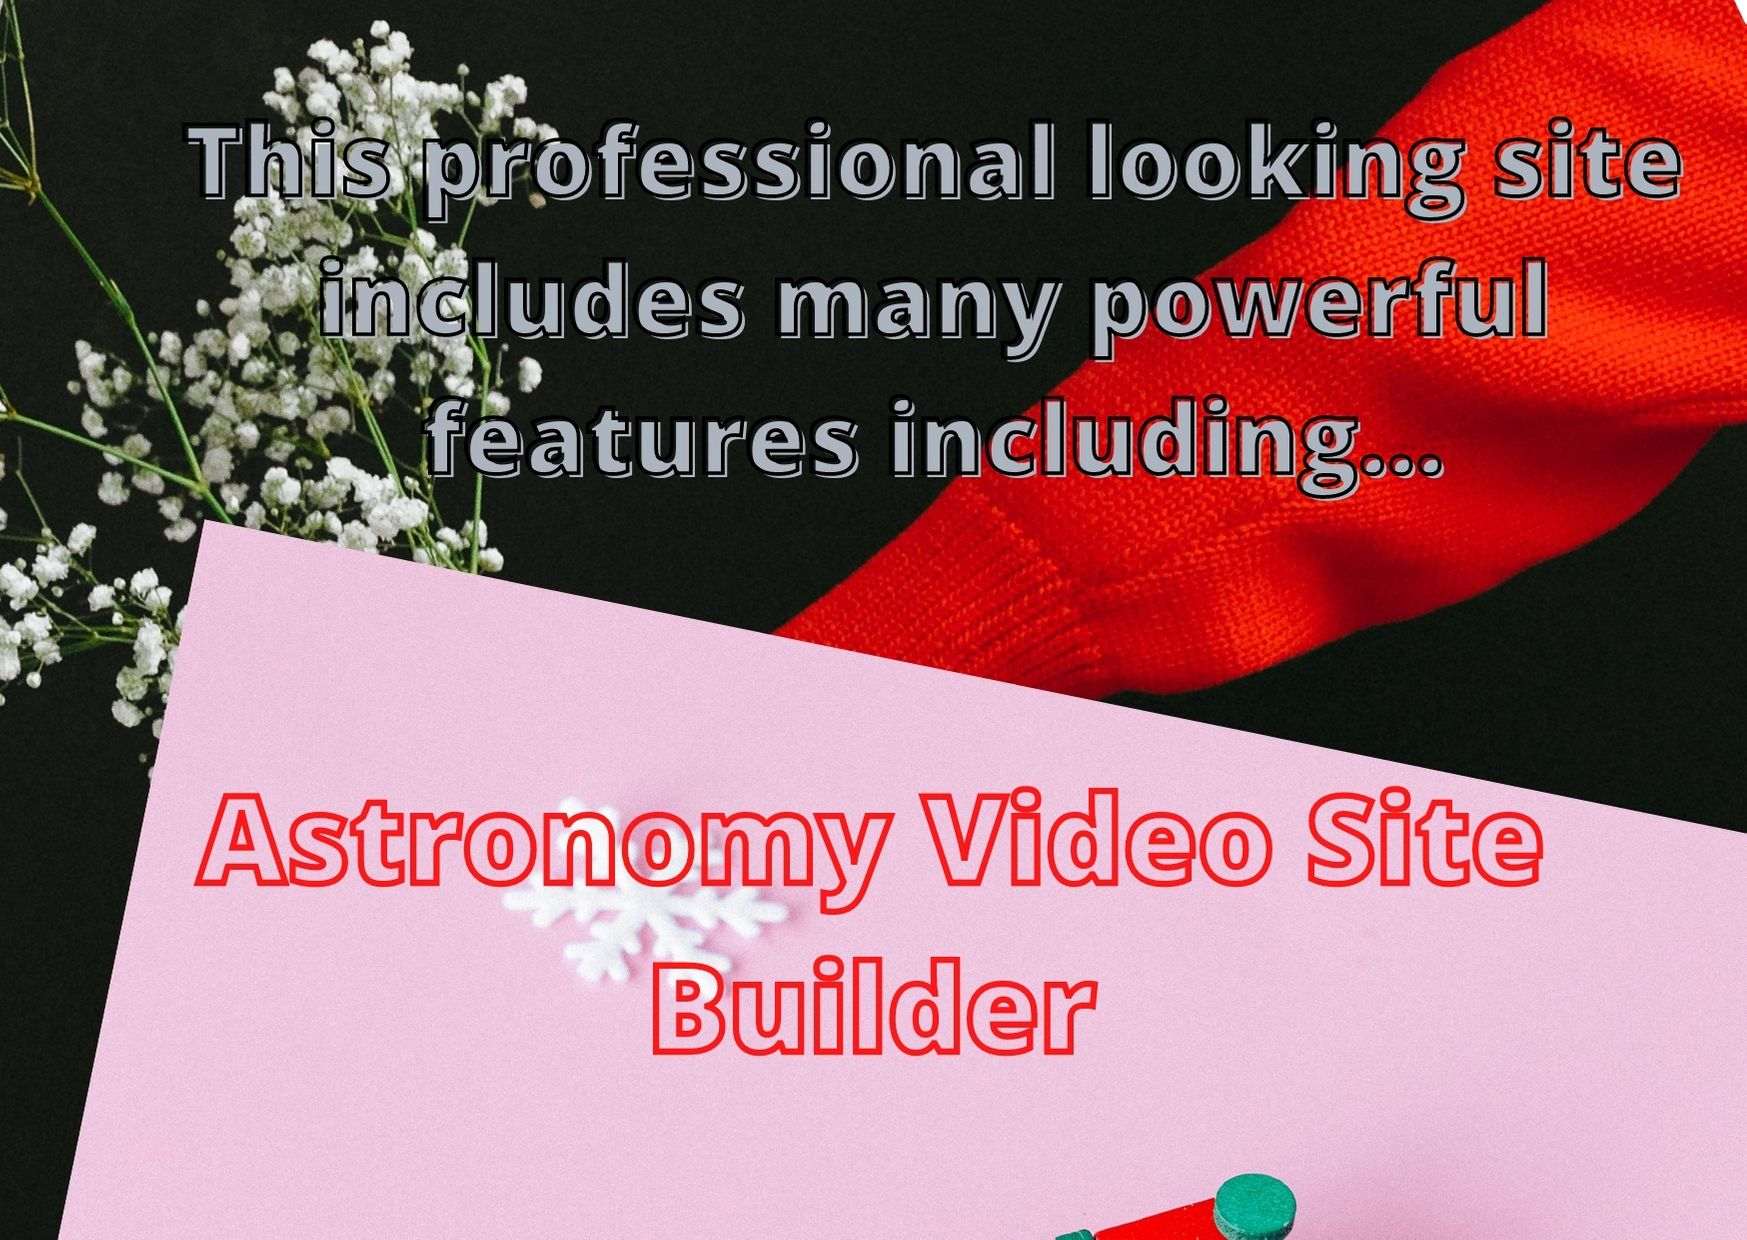 This professional looking site Astronomy Video Site Builder